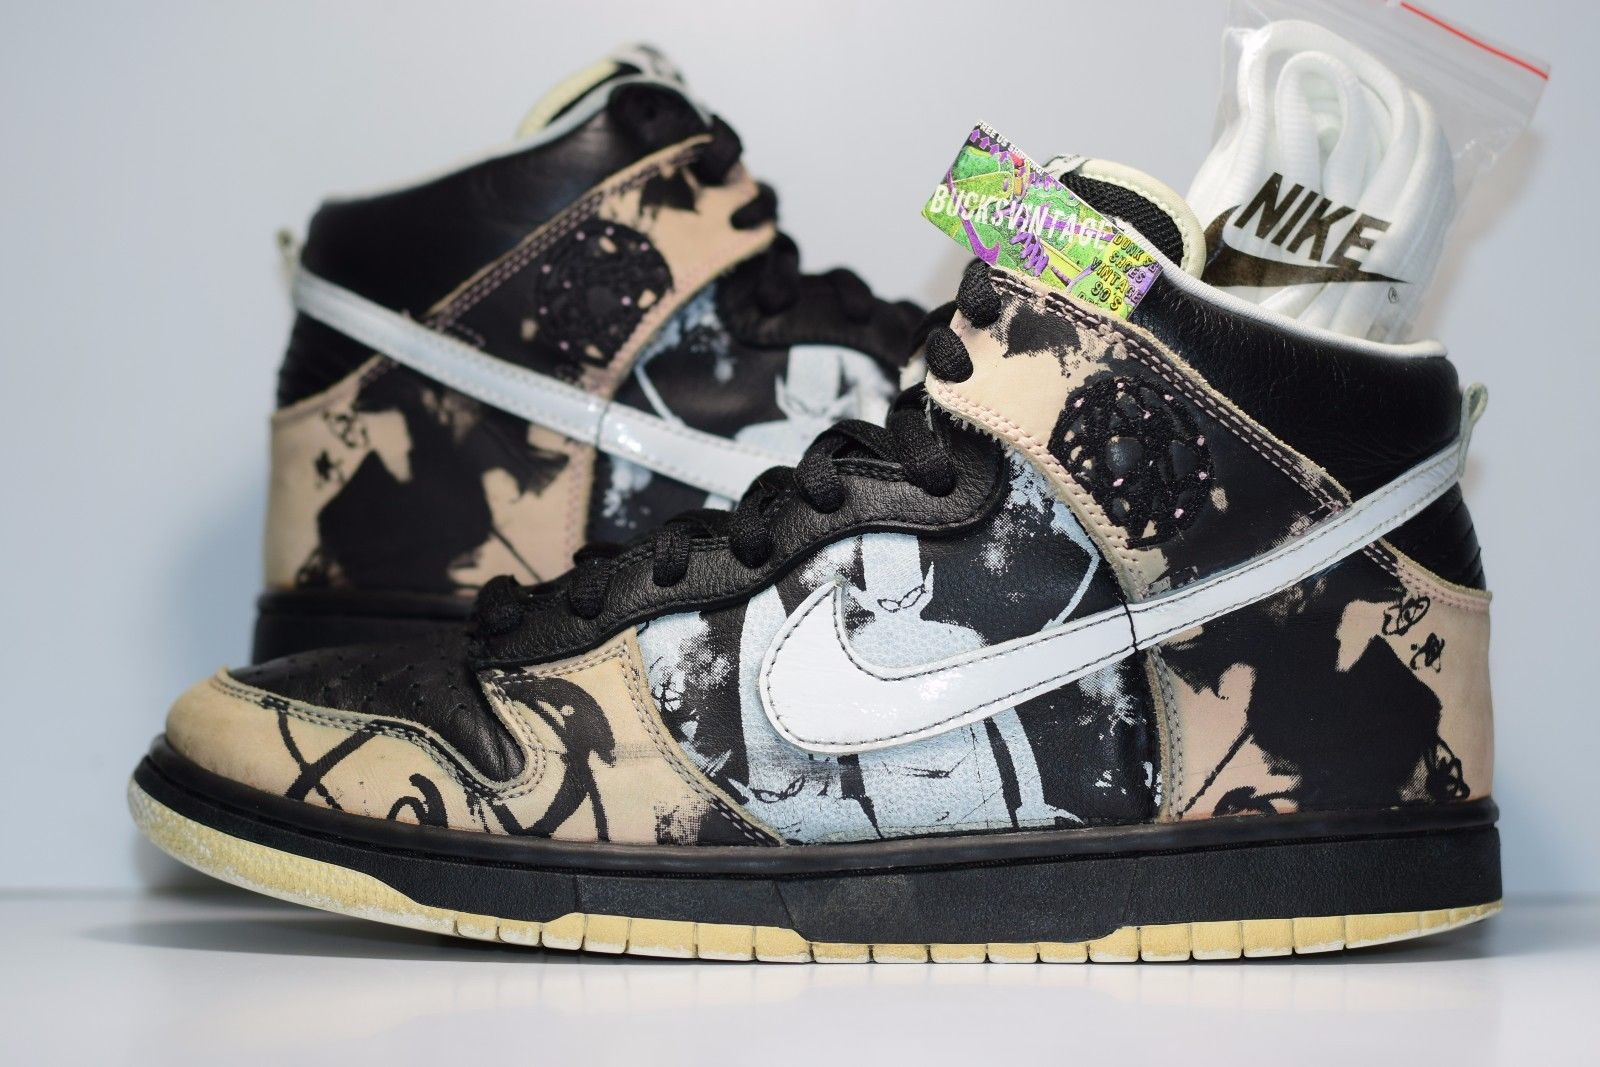 new product 2fbd8 c32aa ... get size 10 2004 nike dunk unkle 305050 013 black white 1dab9 0c0b7